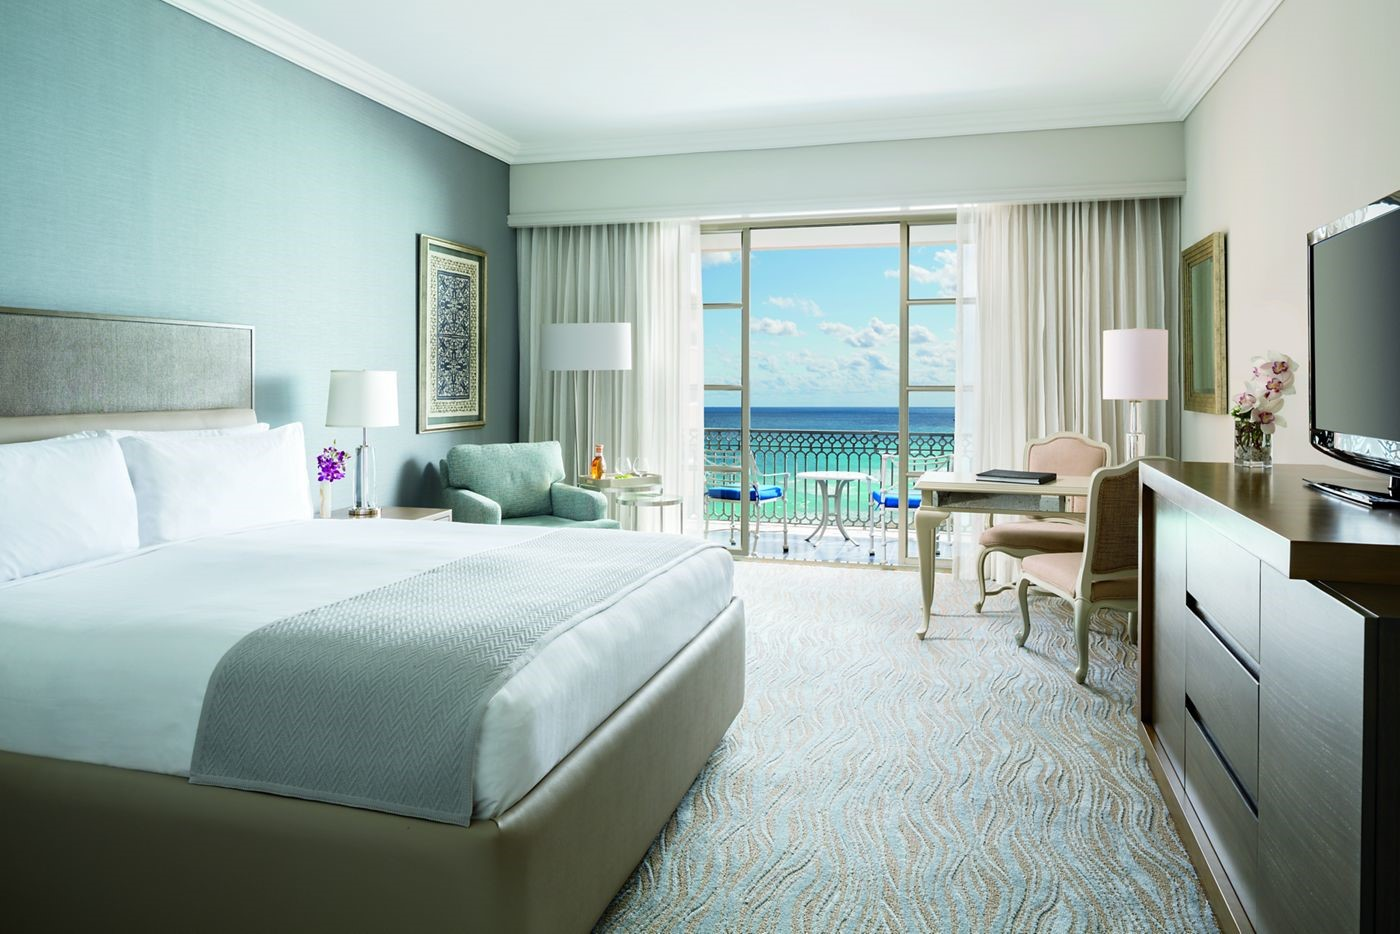 Ritz Carlton Cancun on sale now from EnjoyVacationing.com